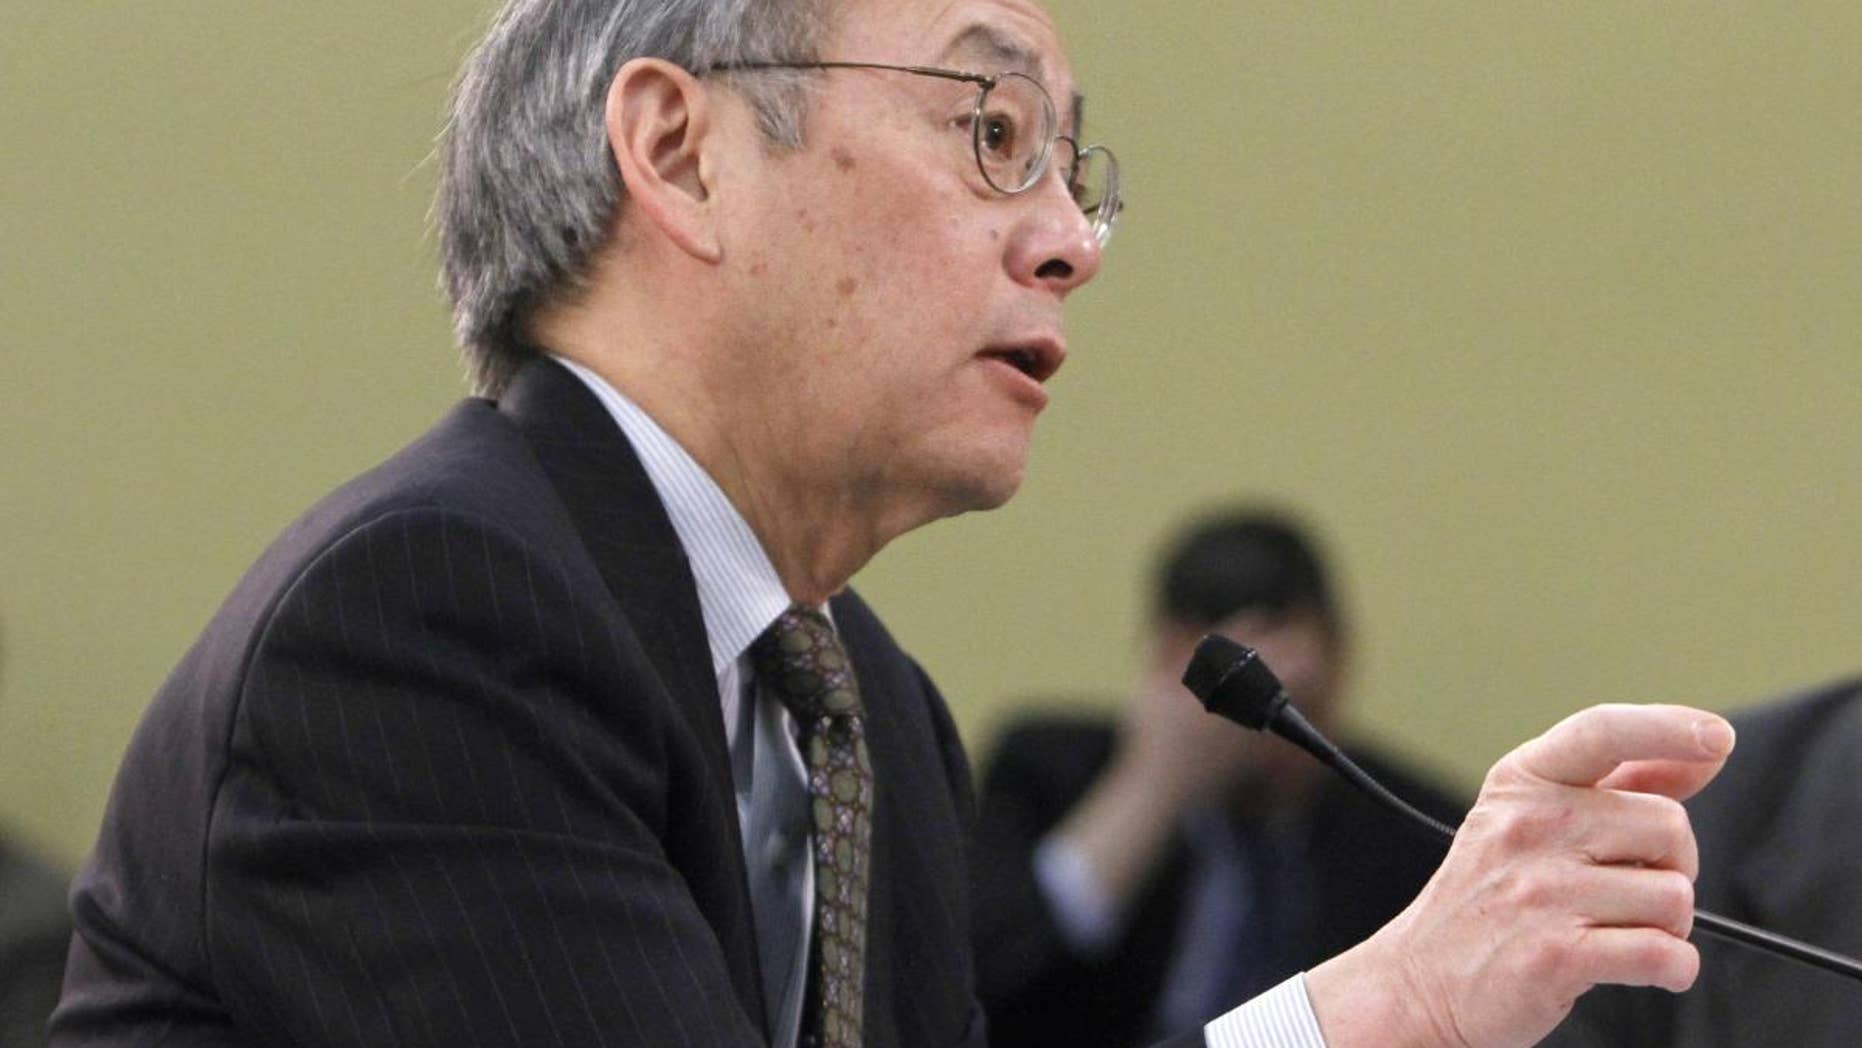 Energy Secretary Steven Chu testifies on Capitol Hill in Washington, Tuesday, March 15, 2011, before the House subcommittee on Energy and Water Development, and Related Agencies. (AP Photo)